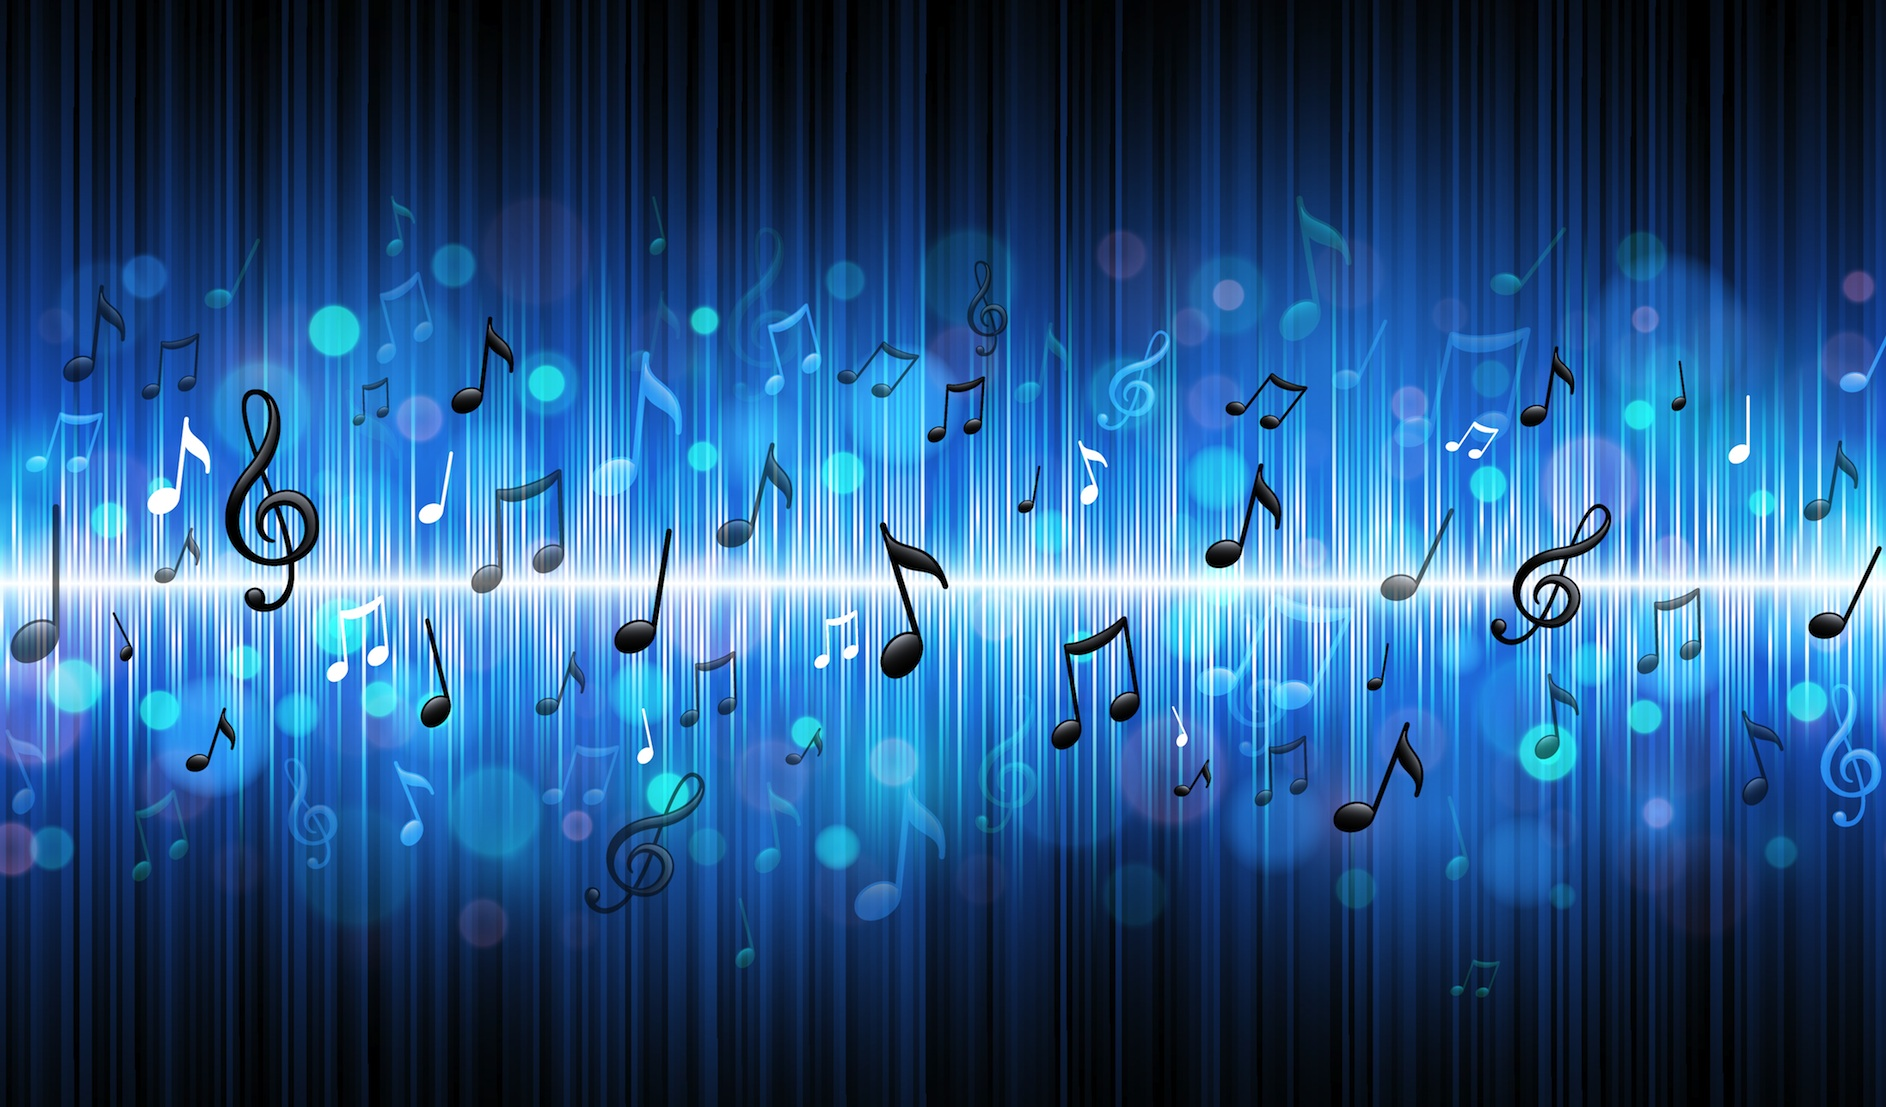 Blue music wallpapers wallpaper cave